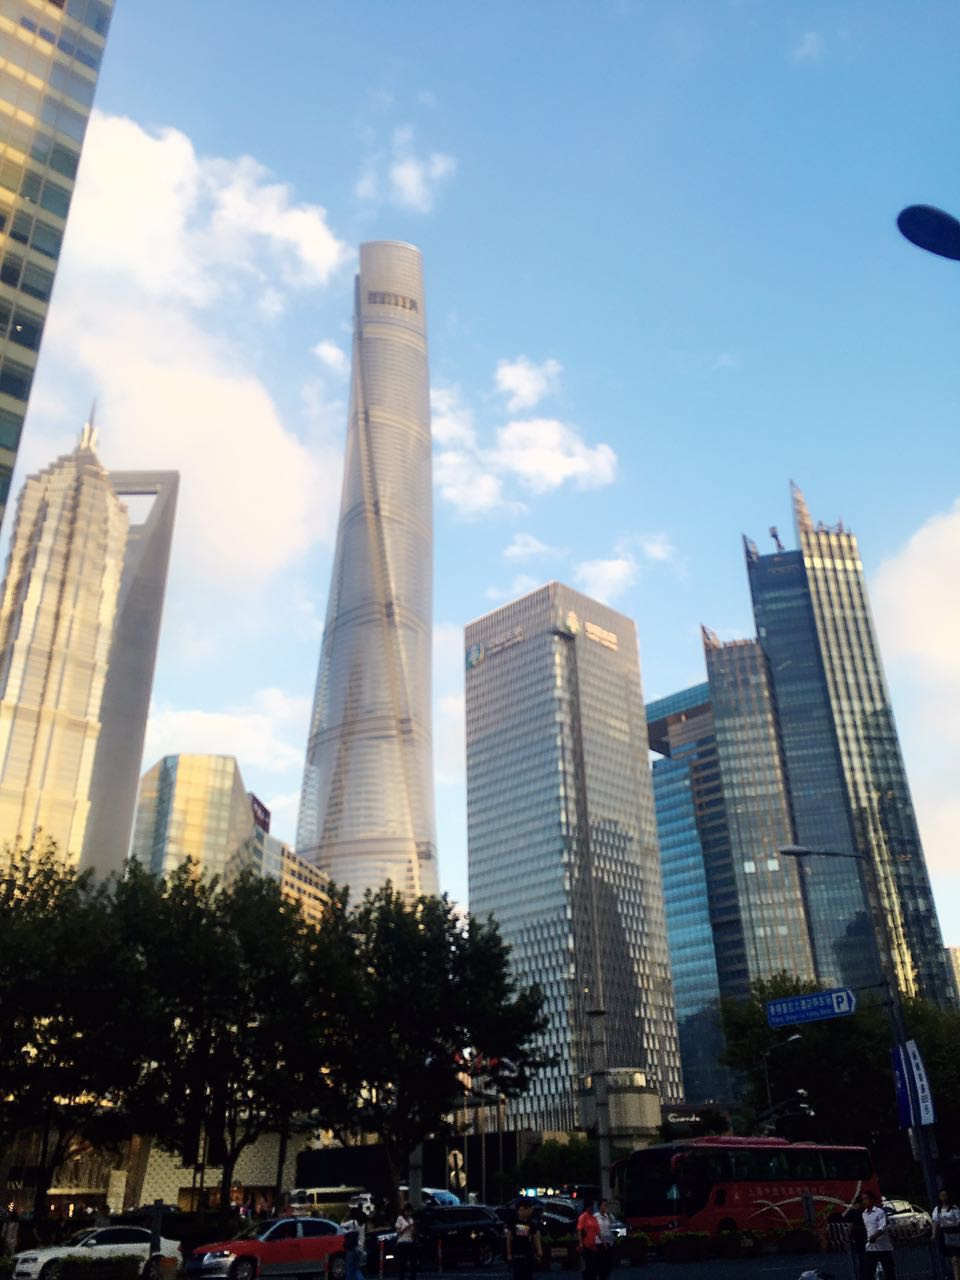 CAPAStudyAbroad_Shanghai_Spring2017 - Asia Rising - The Shanghai Tower by Colin Speakman.jpeg